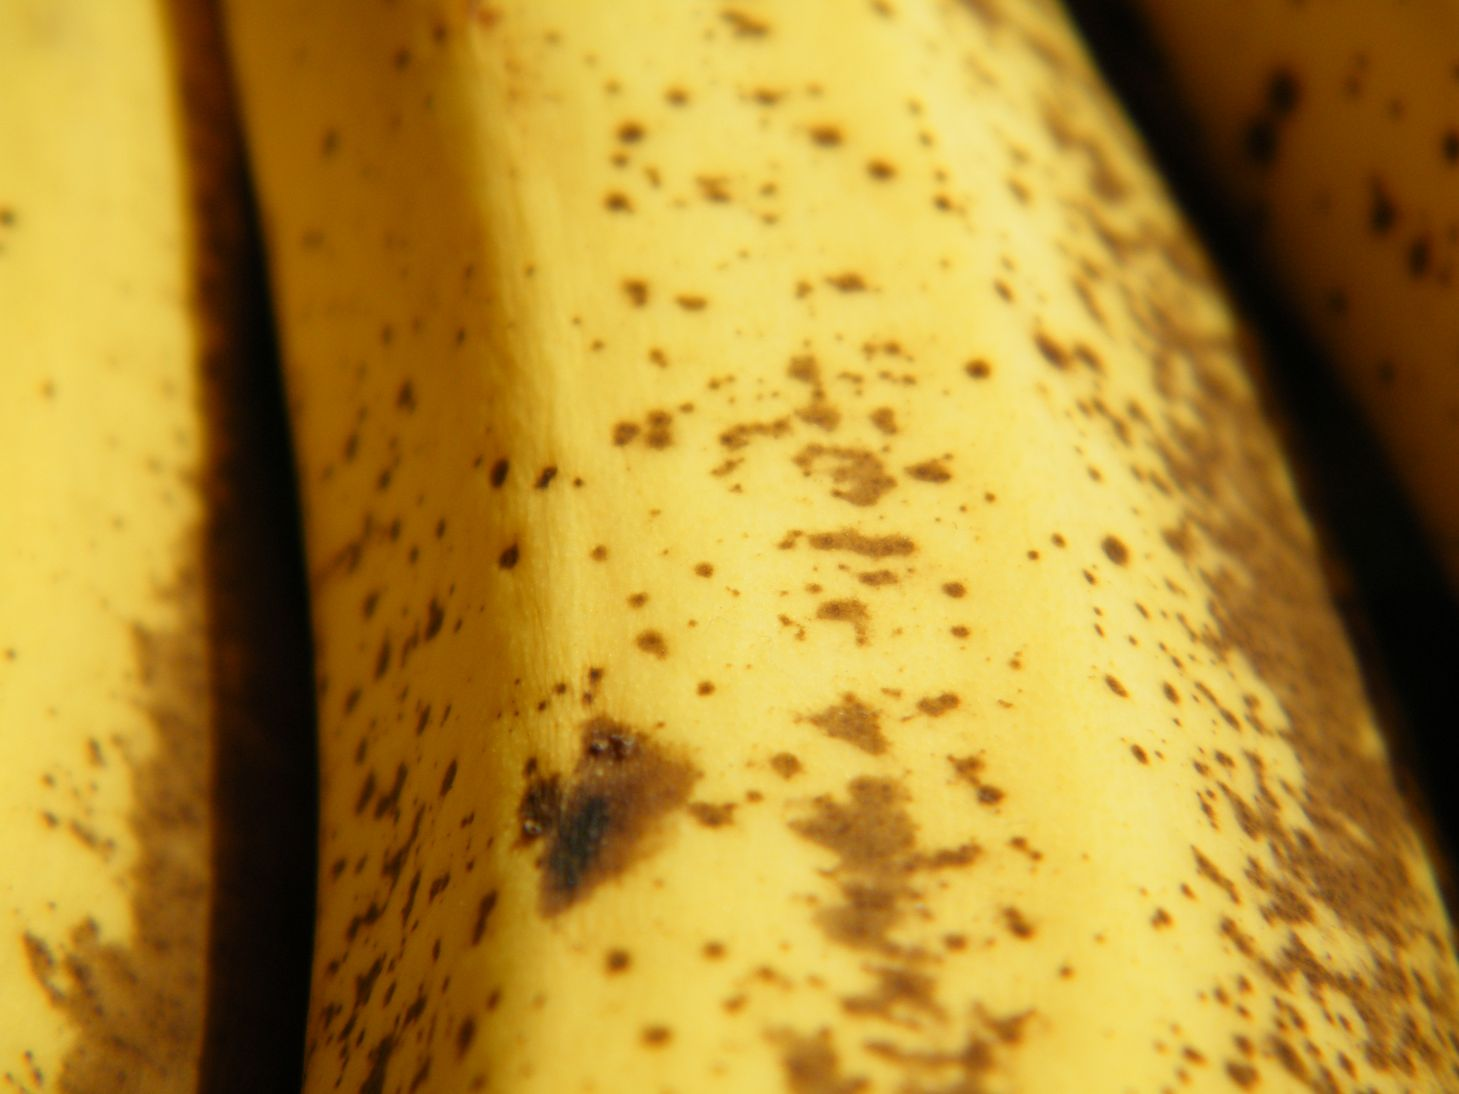 Macro Banana Skin with Brown Freckles